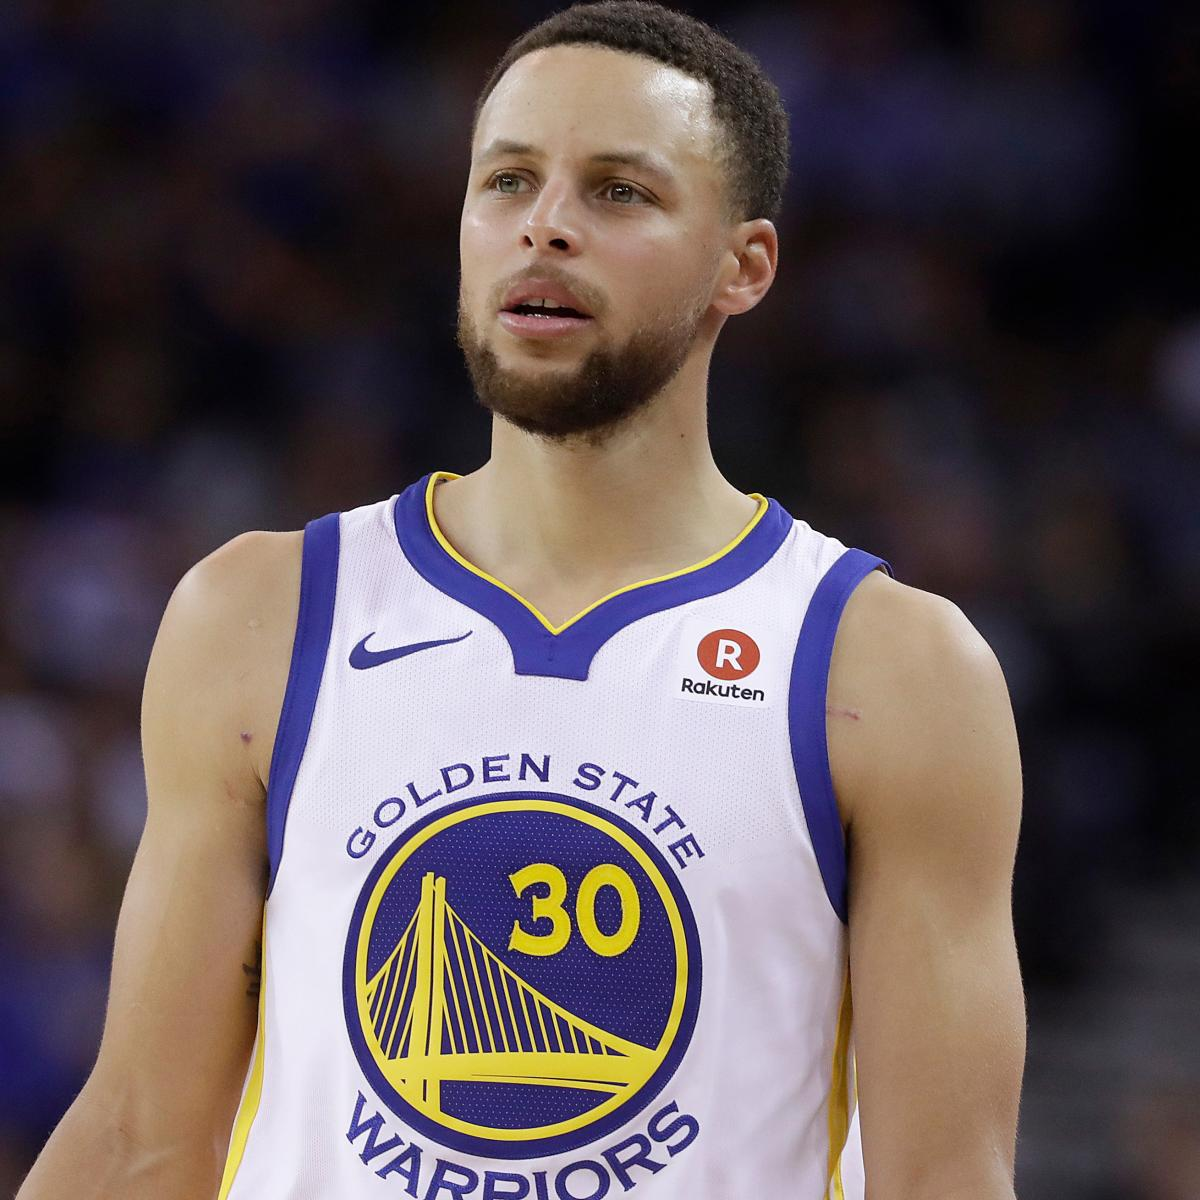 Warriors Come Out To Play Bleacher Report: Stephen Curry Discusses Managing His Minutes, Coming Off